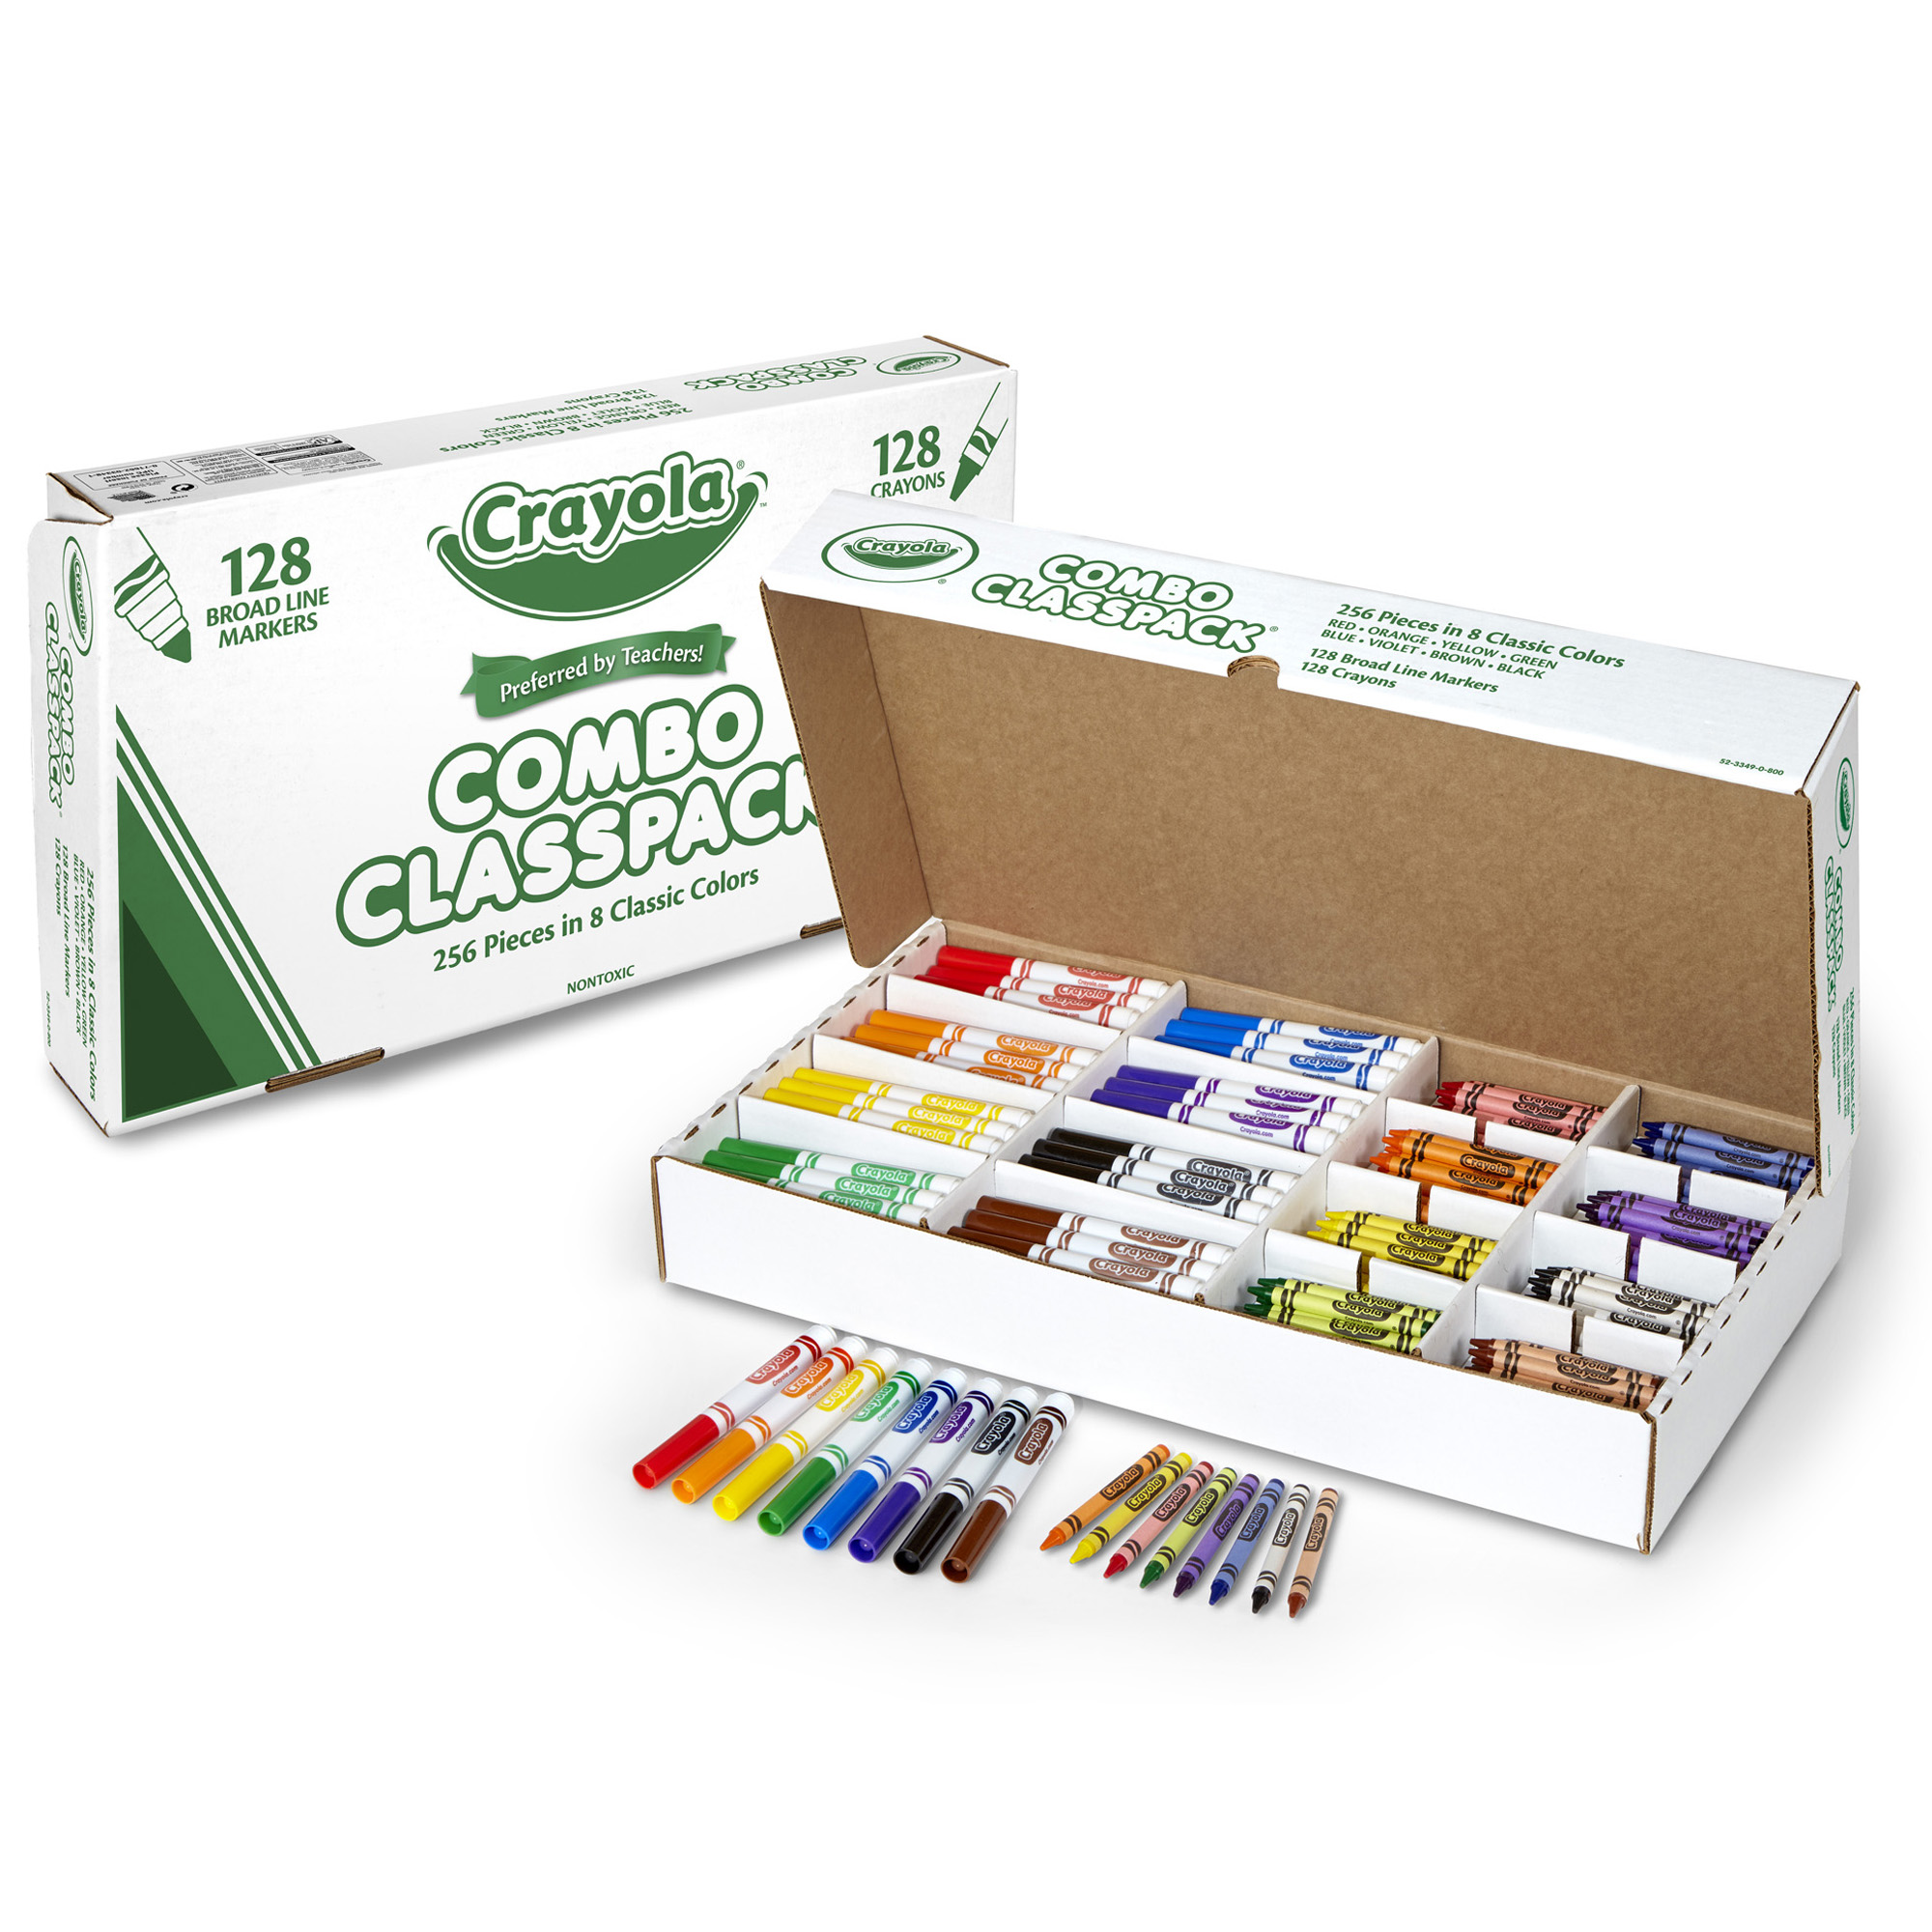 Crayola Crayons And Markers Combo Classpack, 256 Pieces In 8 Classic Colors